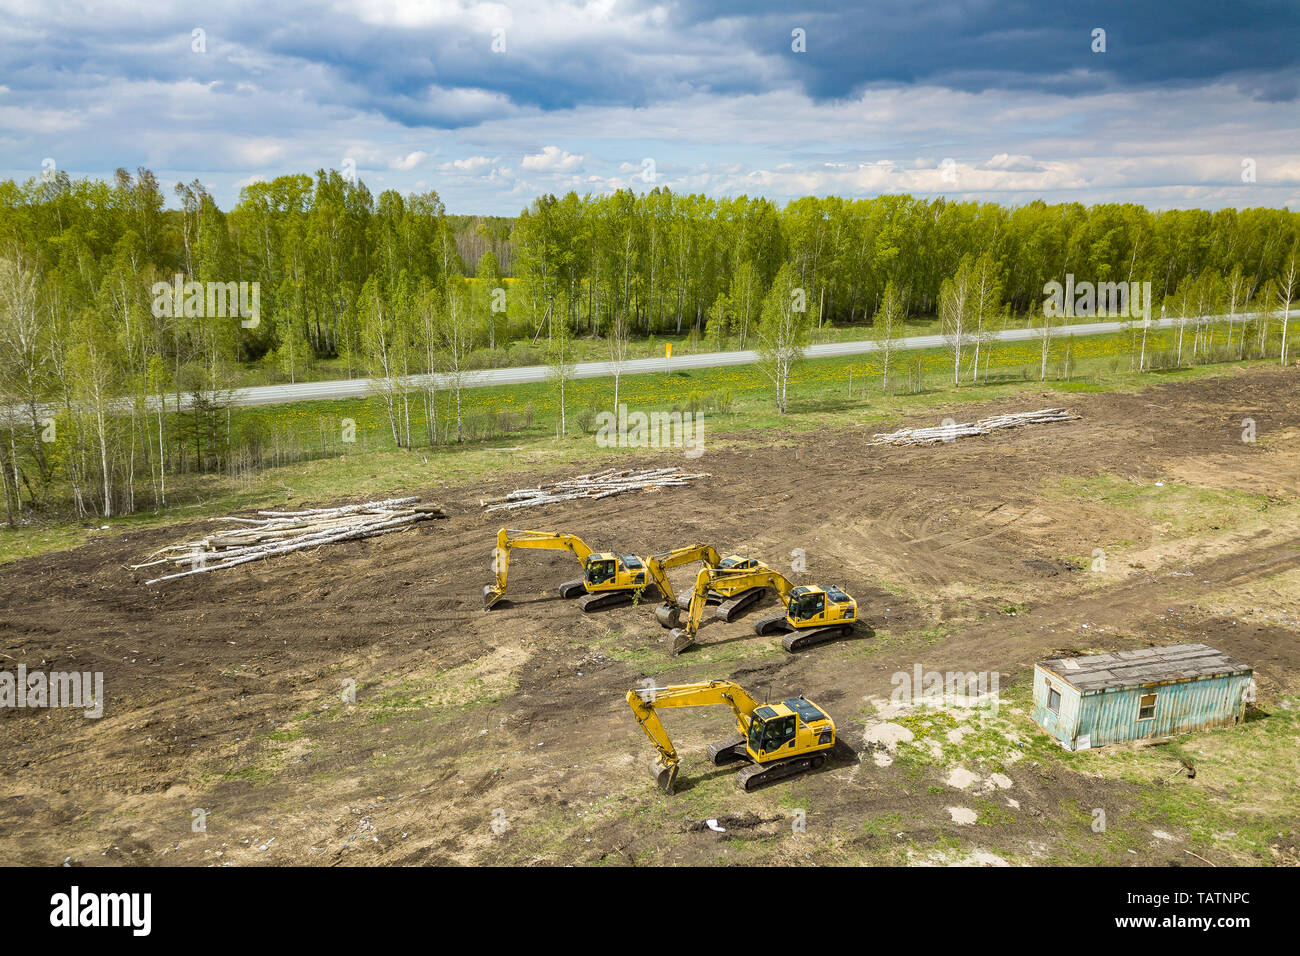 Aerial top view of four yellow crawler excavators standing on ground near the construction site and waiting to start digging the ground near the road  - Stock Image